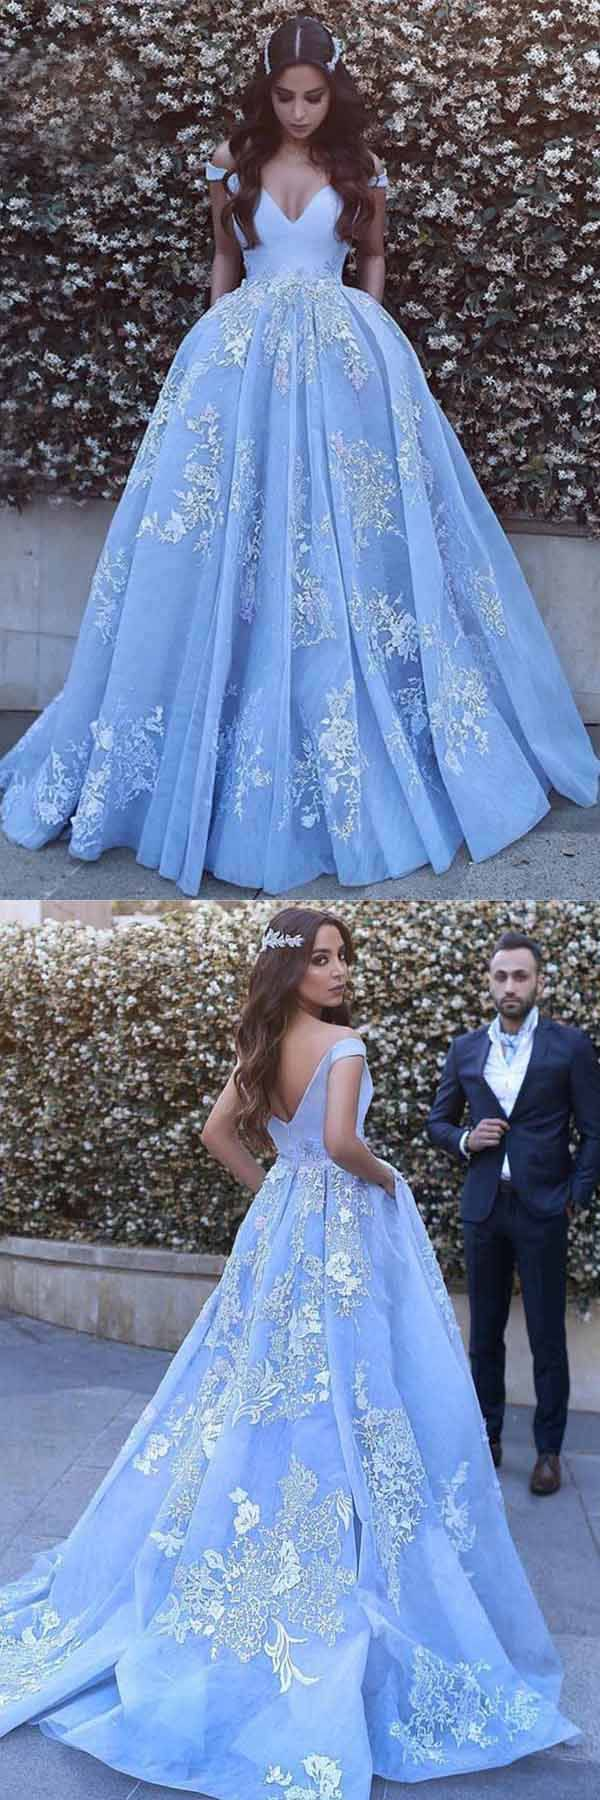 Ball Gown Off-the-Shoulder Sweep Train Blue Tulle Prom Dress PG464 #promdress #partydress #ballgown #eveningdress